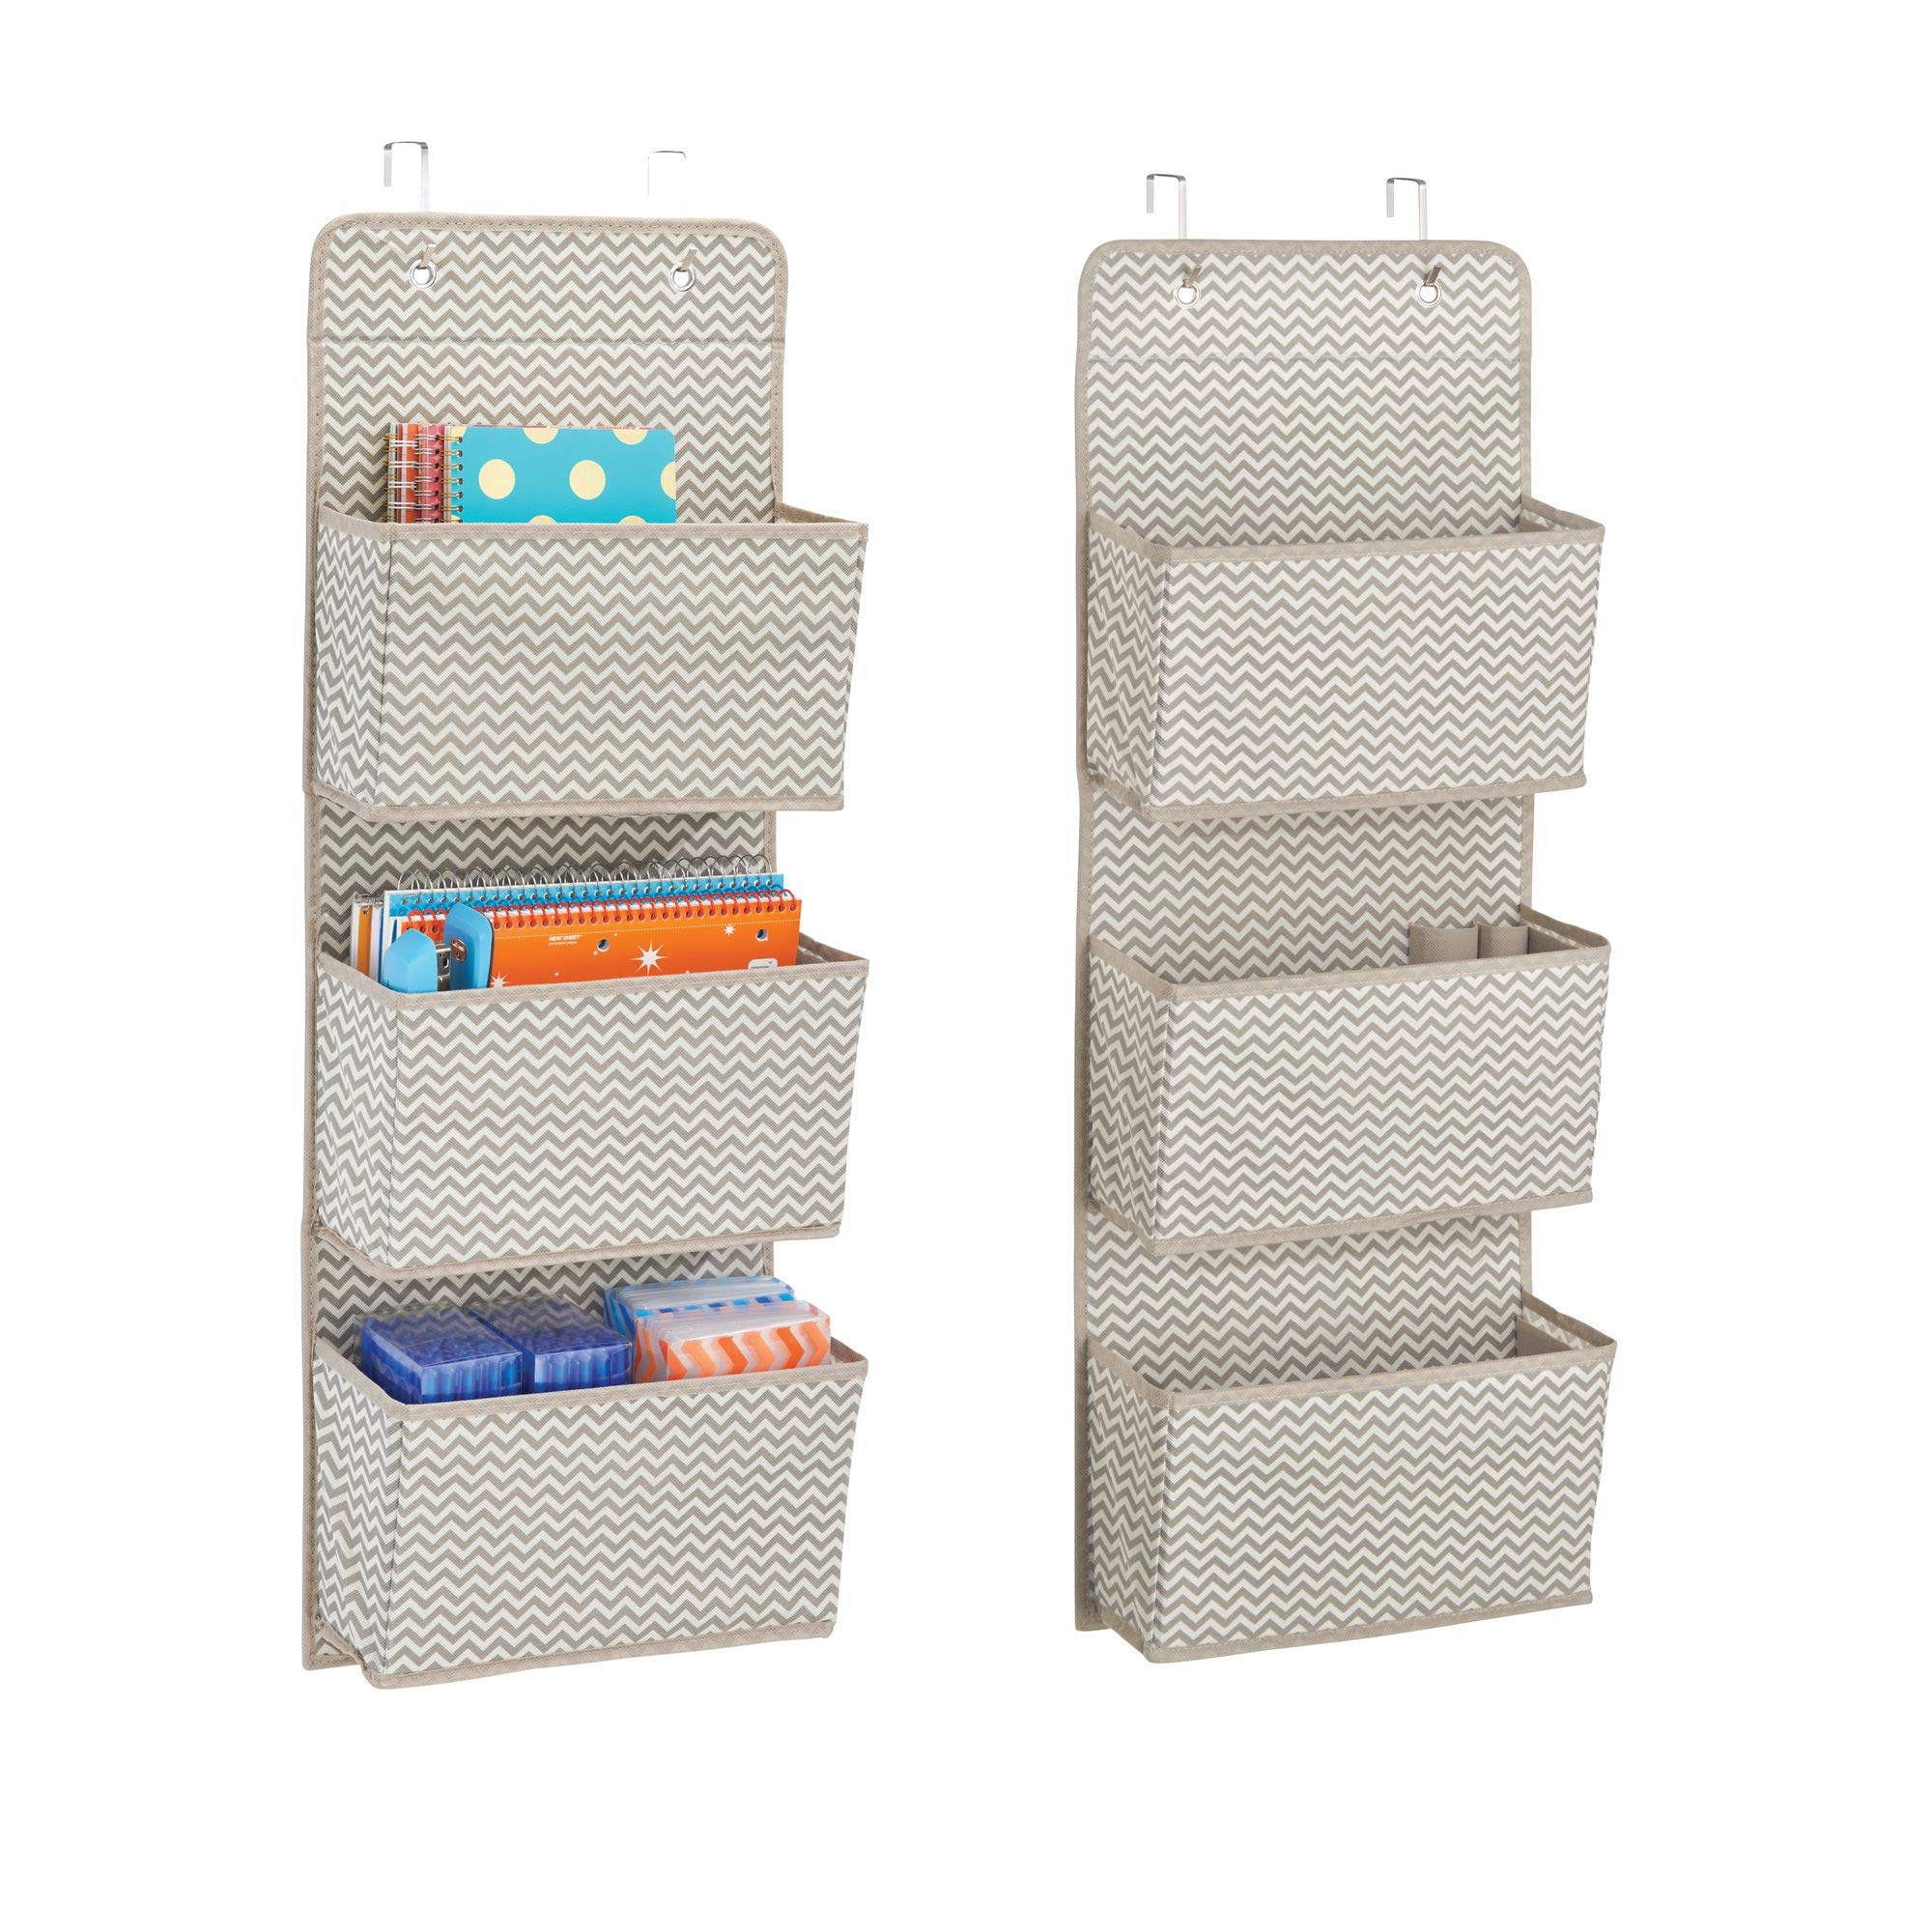 mDesign Over The Door Fabric Office Supplies Storage Organizer for Notebooks, Planners, File Folders - Pack of 2, 3 Pockets Each, Taupe/Natural